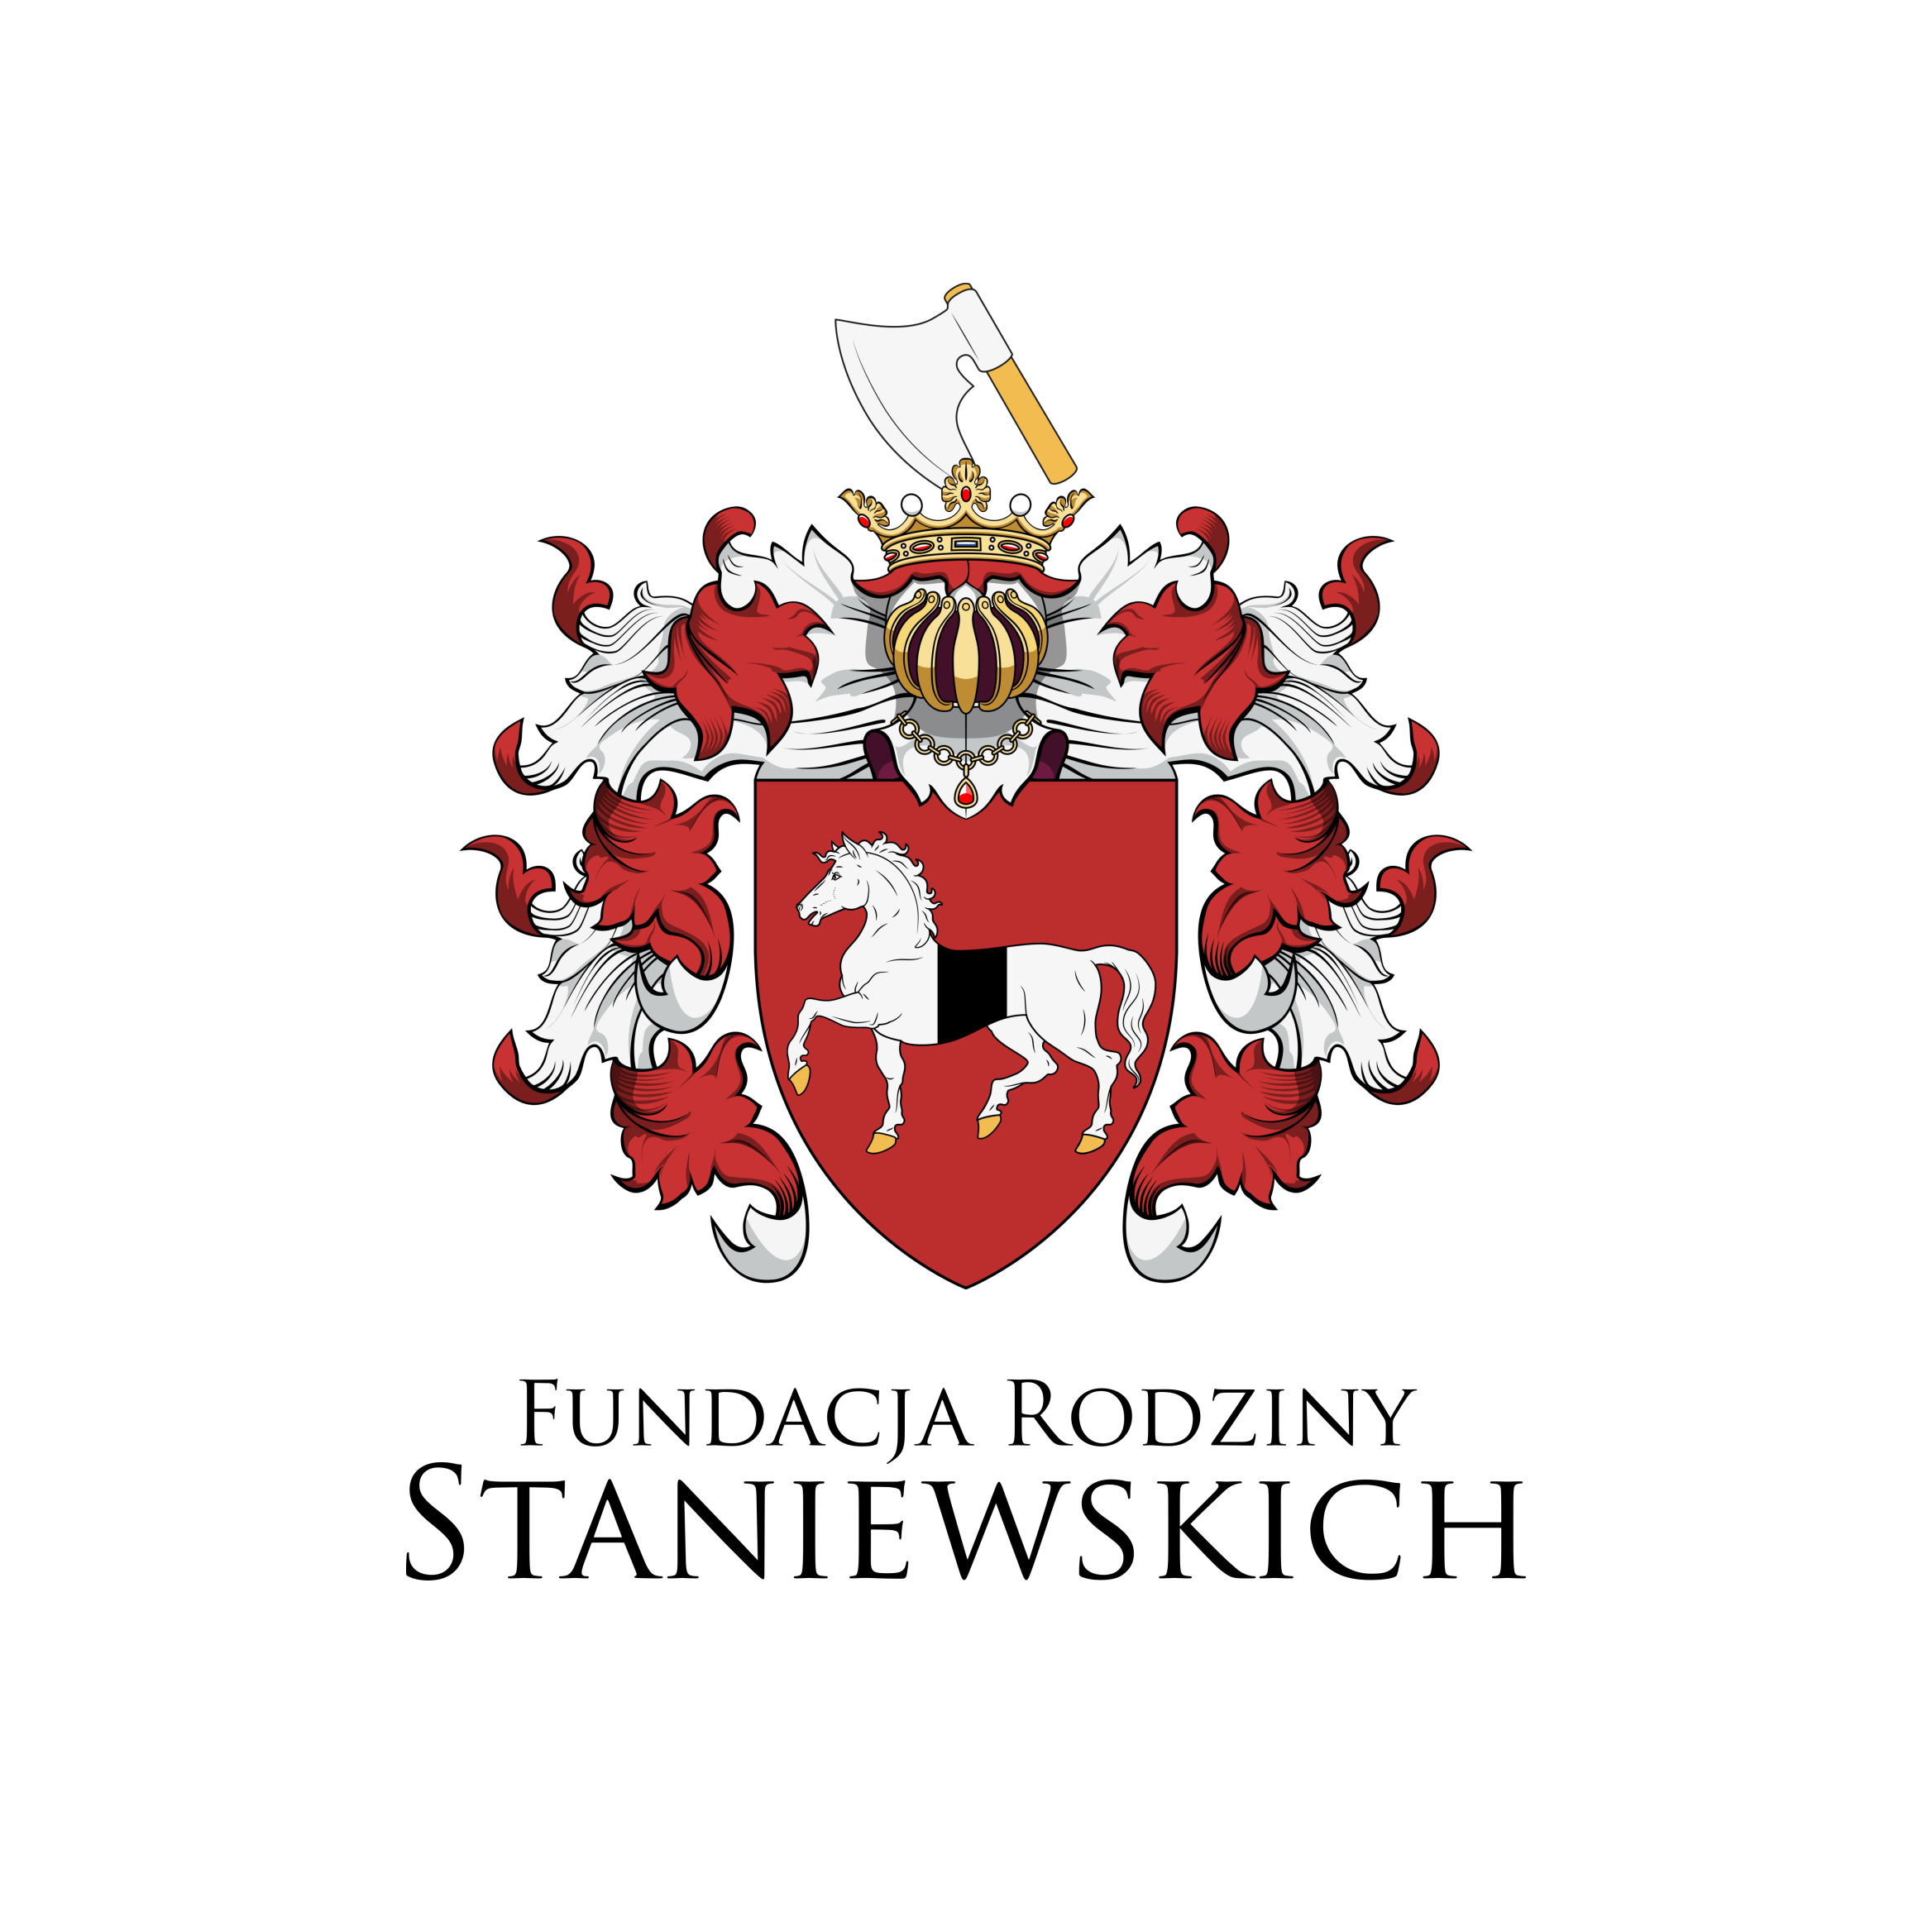 Staniewski Family Foundation